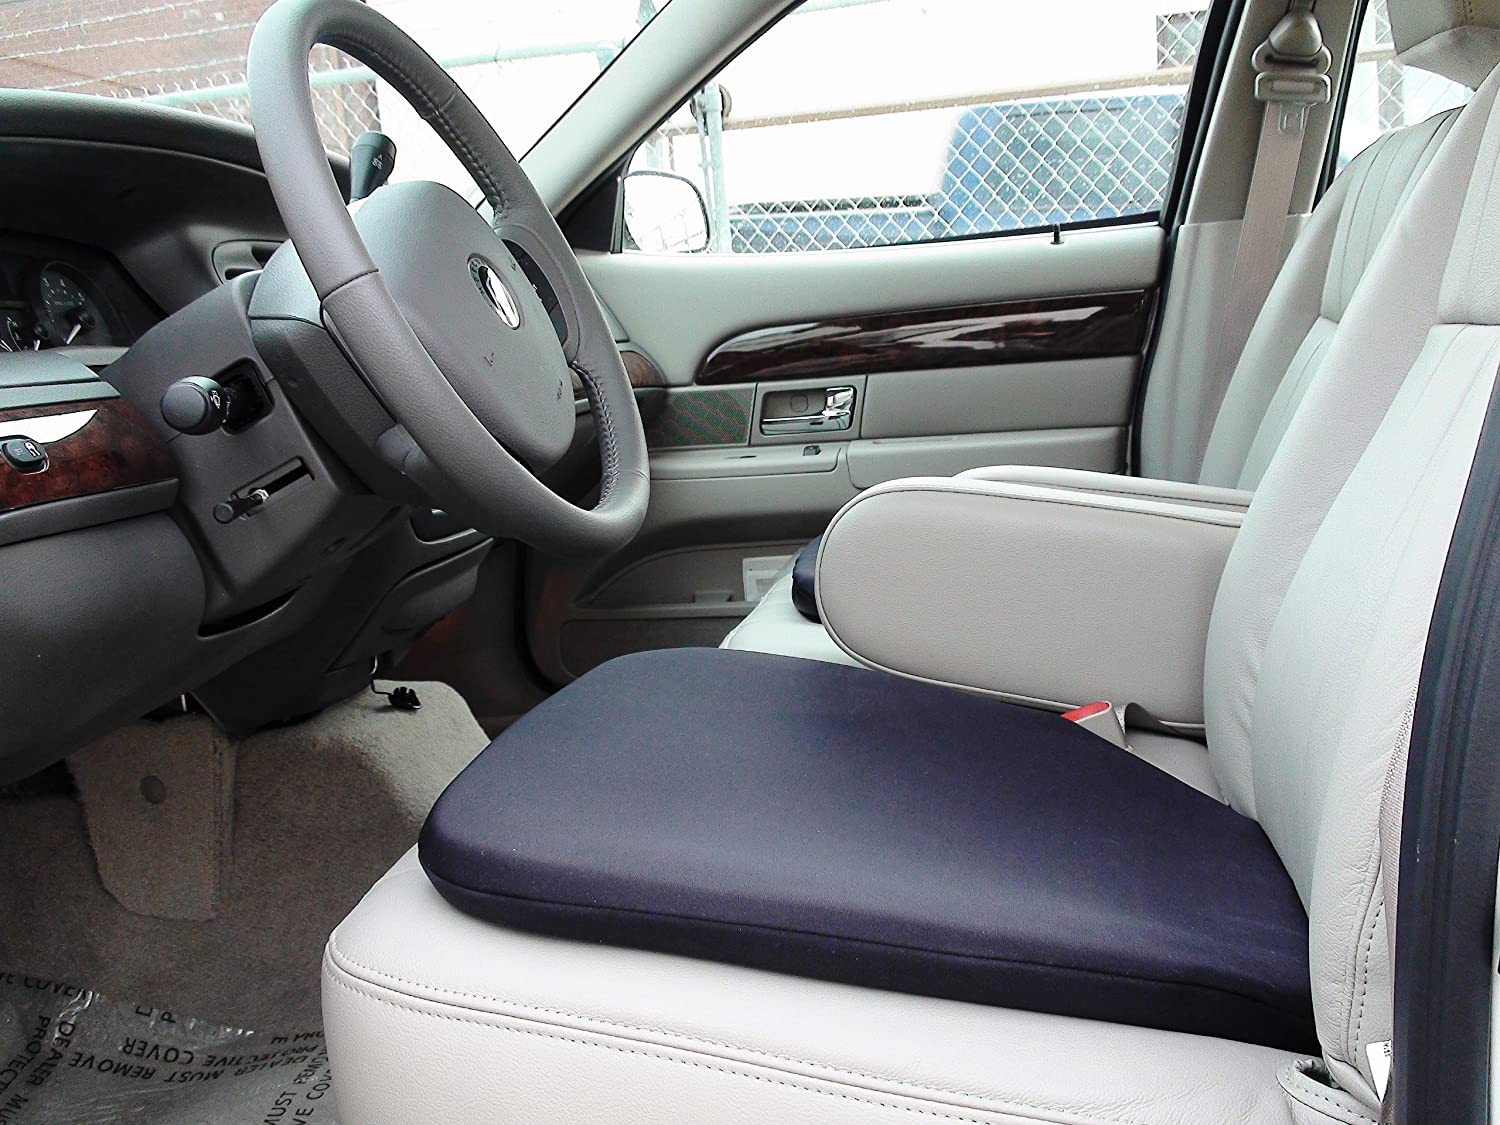 Amazon.com: CONFORMAX Anywhere, Anytime Gel Car/Truck Seat Cushion